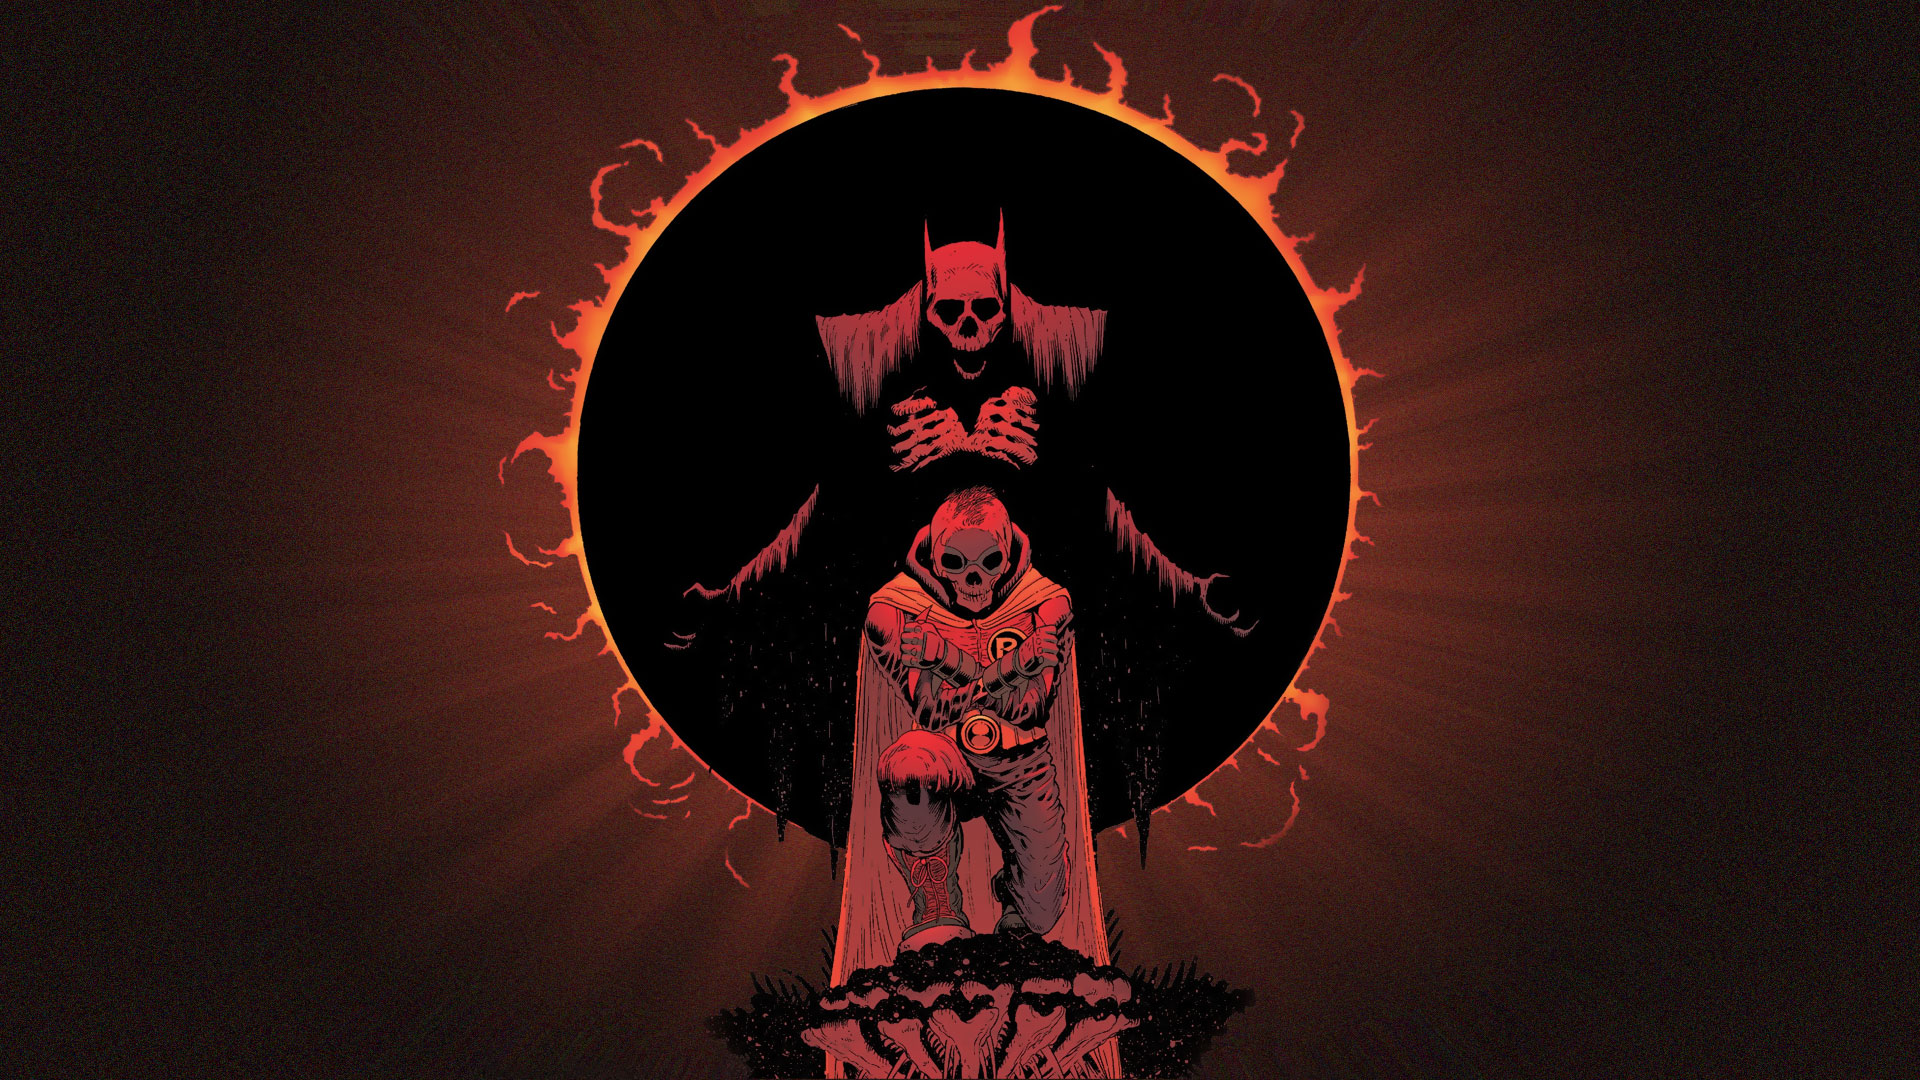 Batman hd wallpaper background image 1920x1080 id - Devil skull wallpaper ...